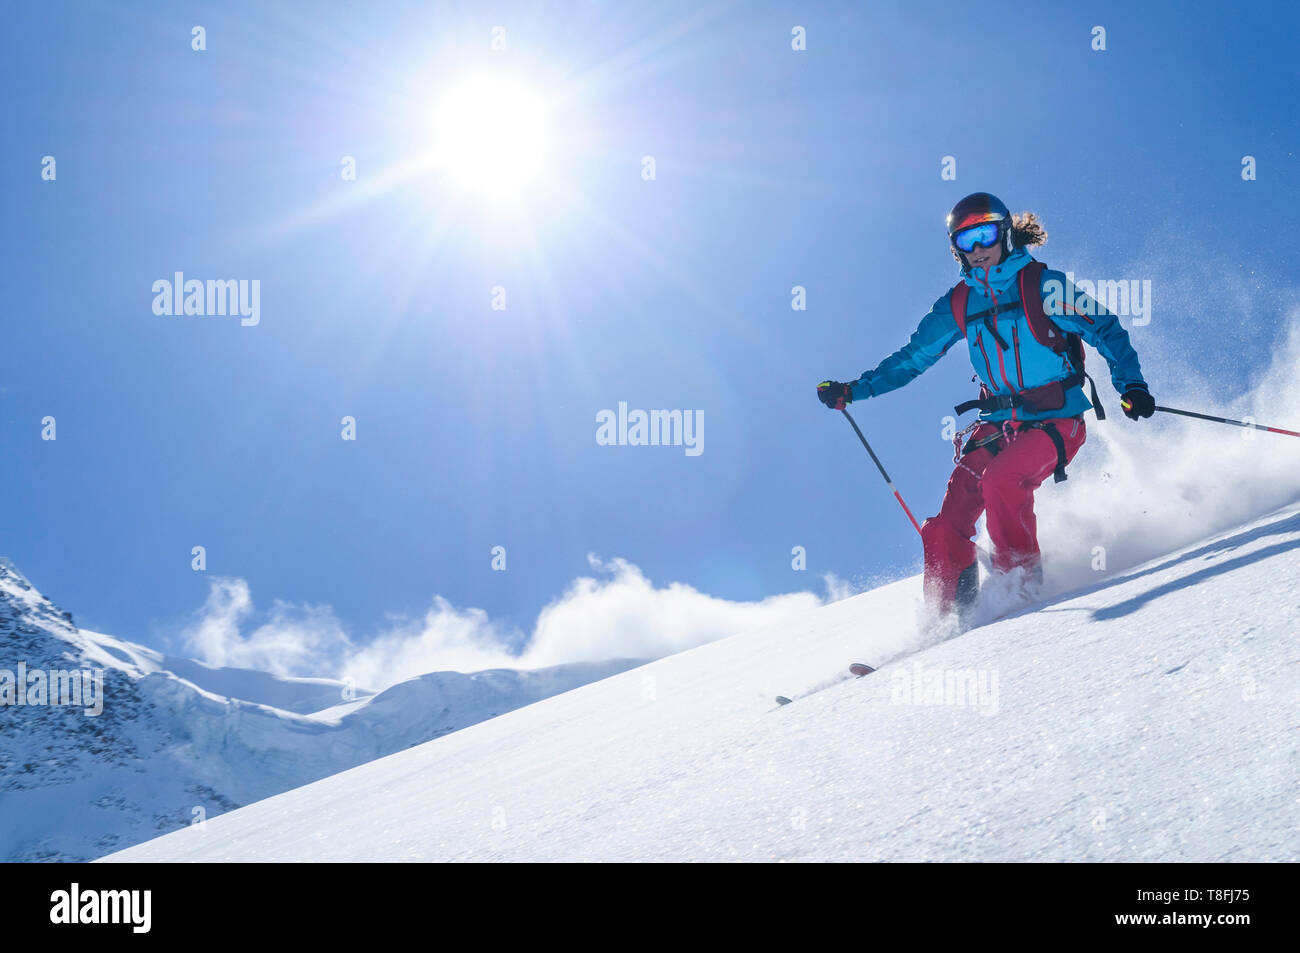 Female freeskier skiing in backcountry on fantastic Monte Rosa glaciers - Stock Image